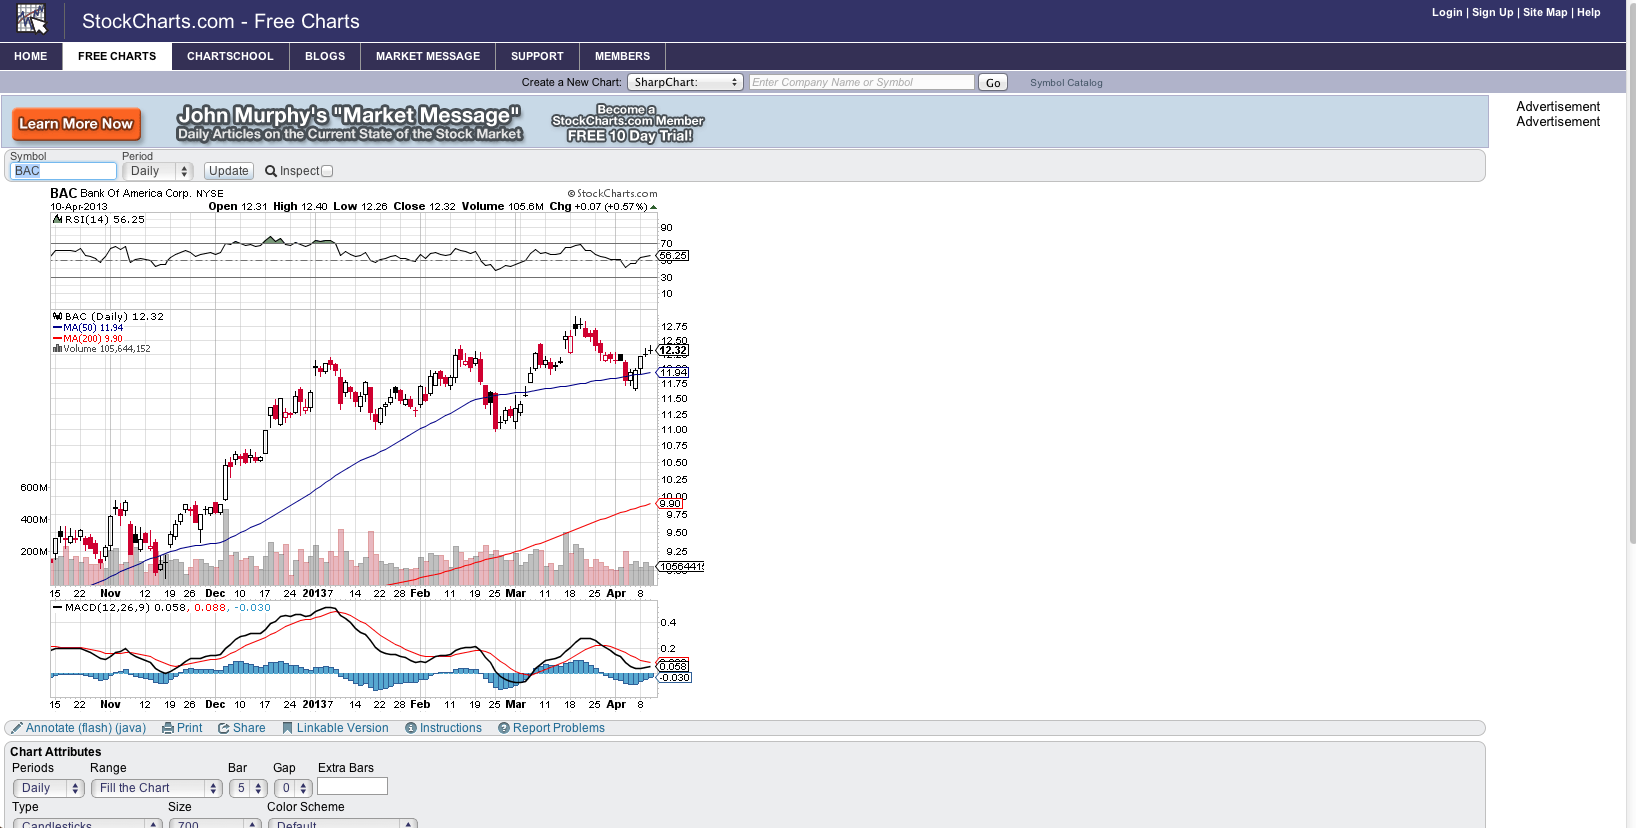 stockcharts.com-2013-04-1-_freecharts